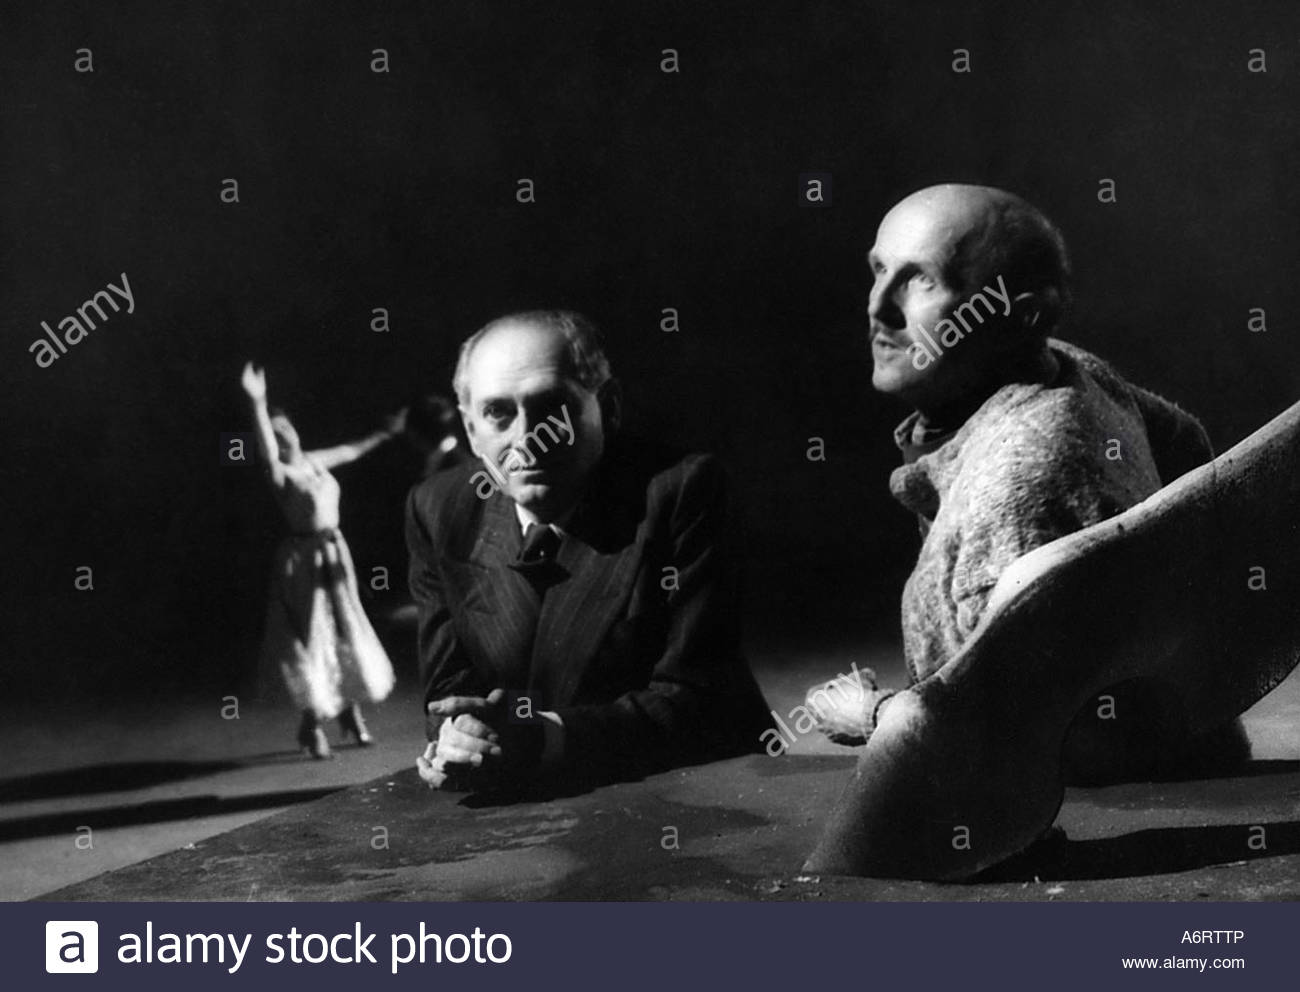 Pressburger, Emeric, 5.12.1902 - 5.2.1988, Hungarian director, with Michael Powell, (1905- 1990), during making - Stock Image